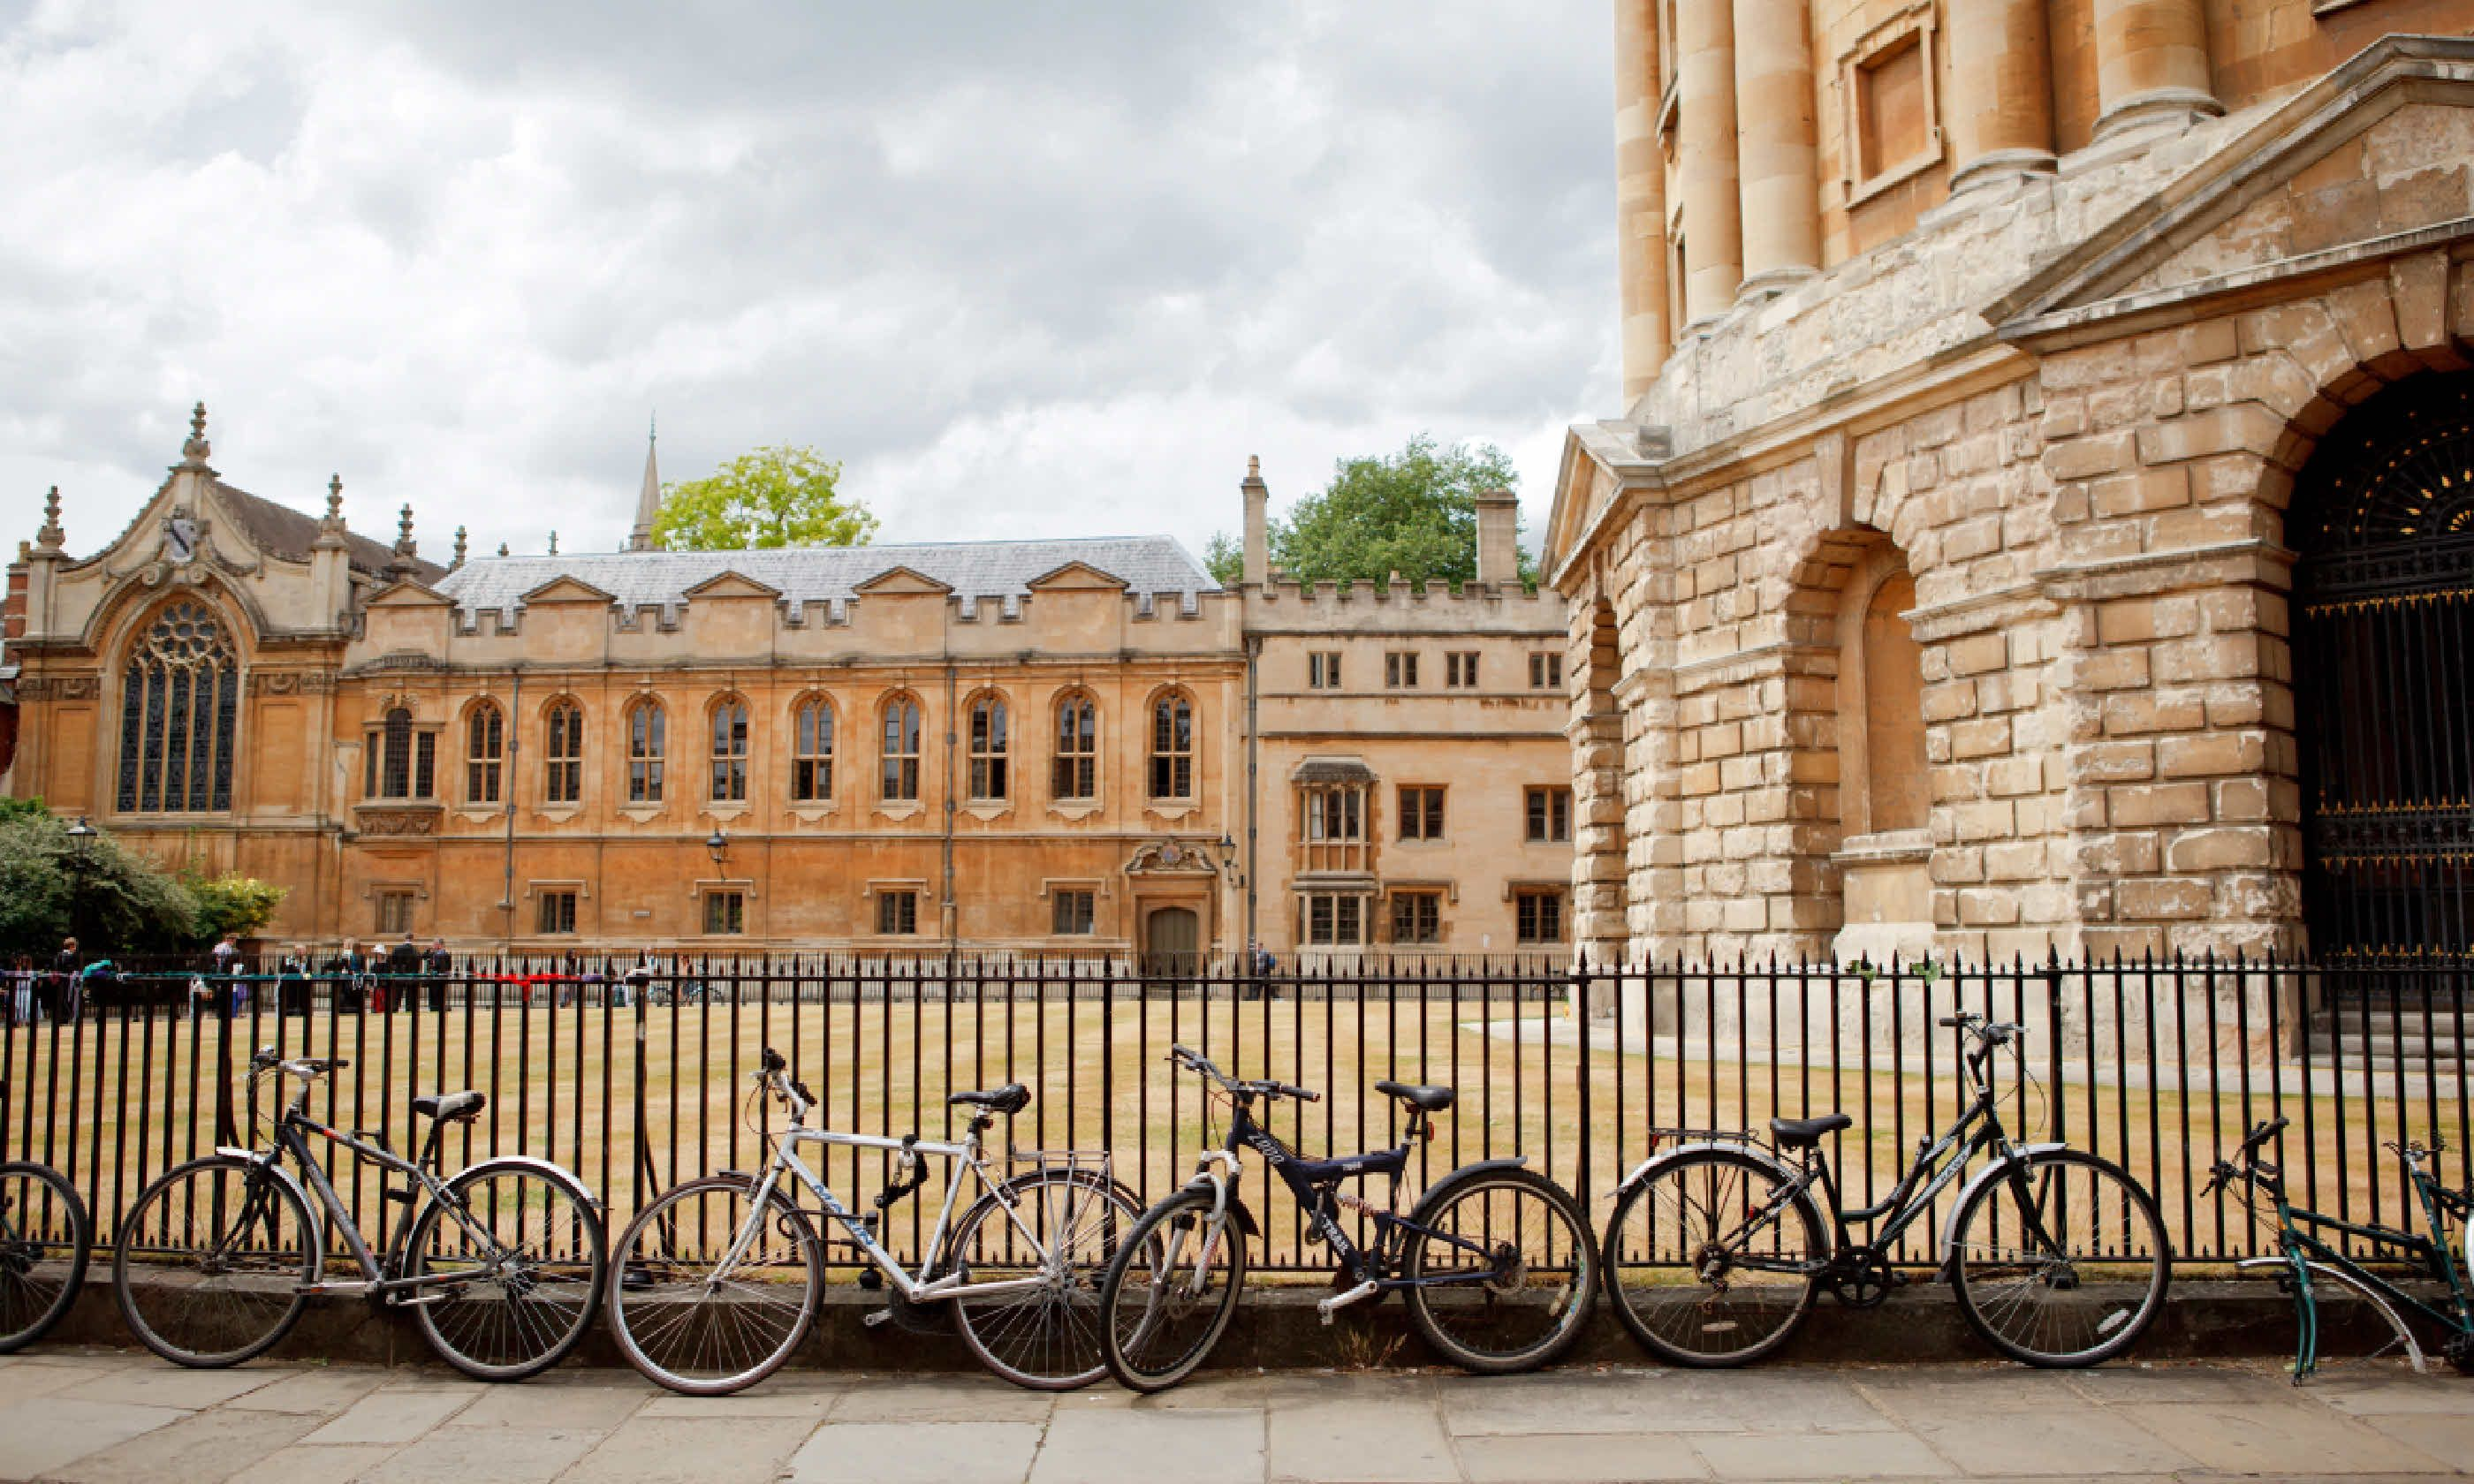 Oxford University, England (Shutterstock)